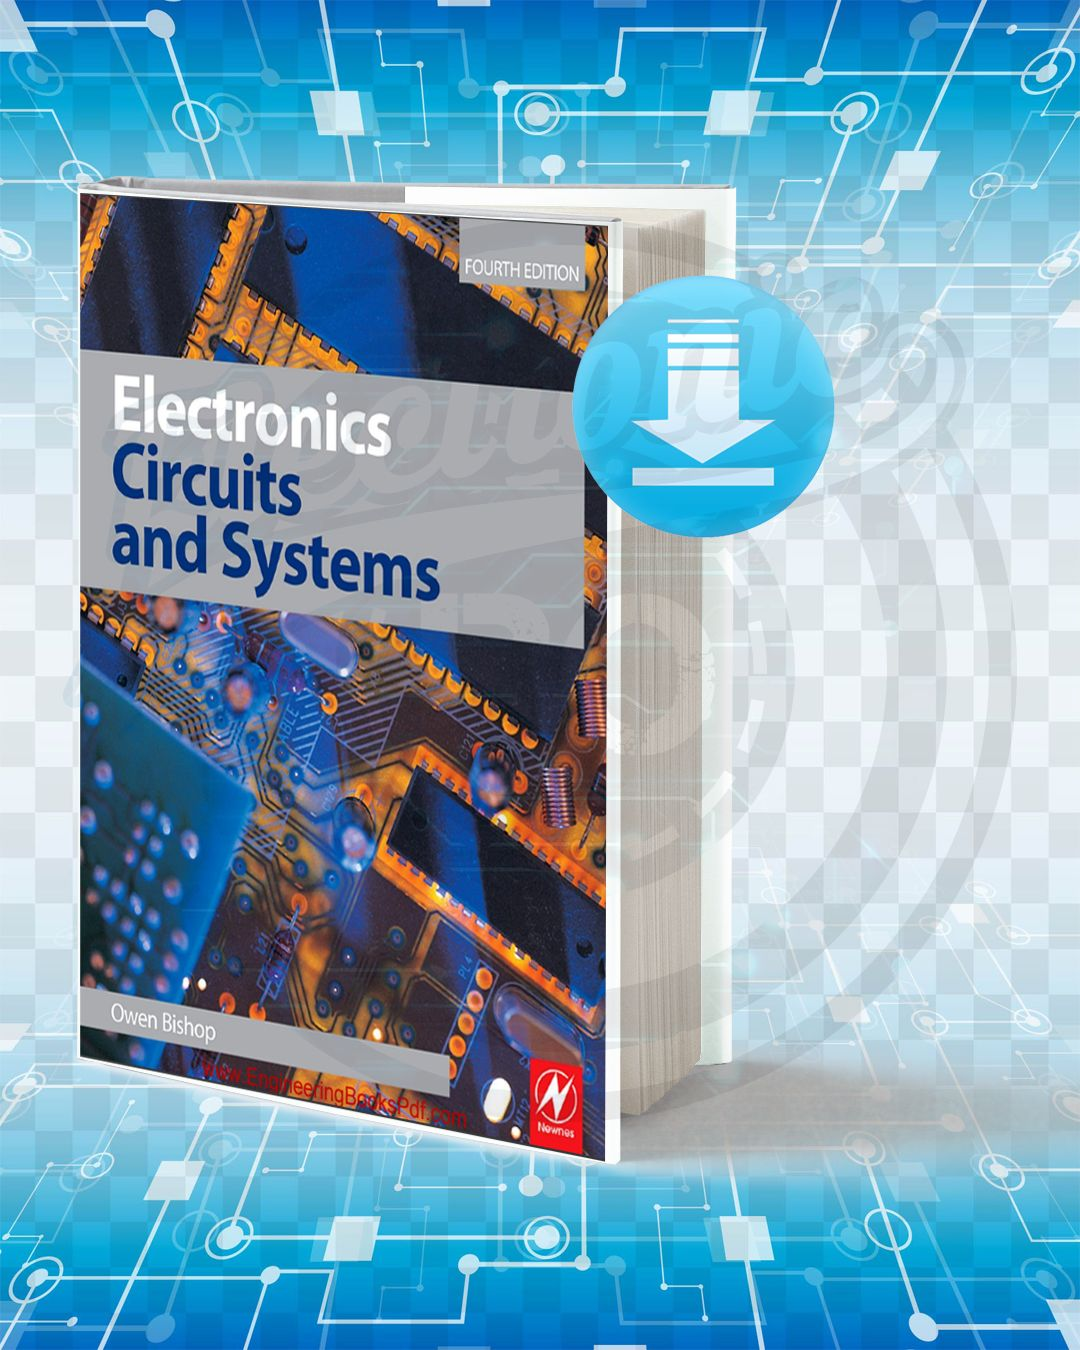 download electronics circuits and systems free book pinterestdownload electronics circuits and systems